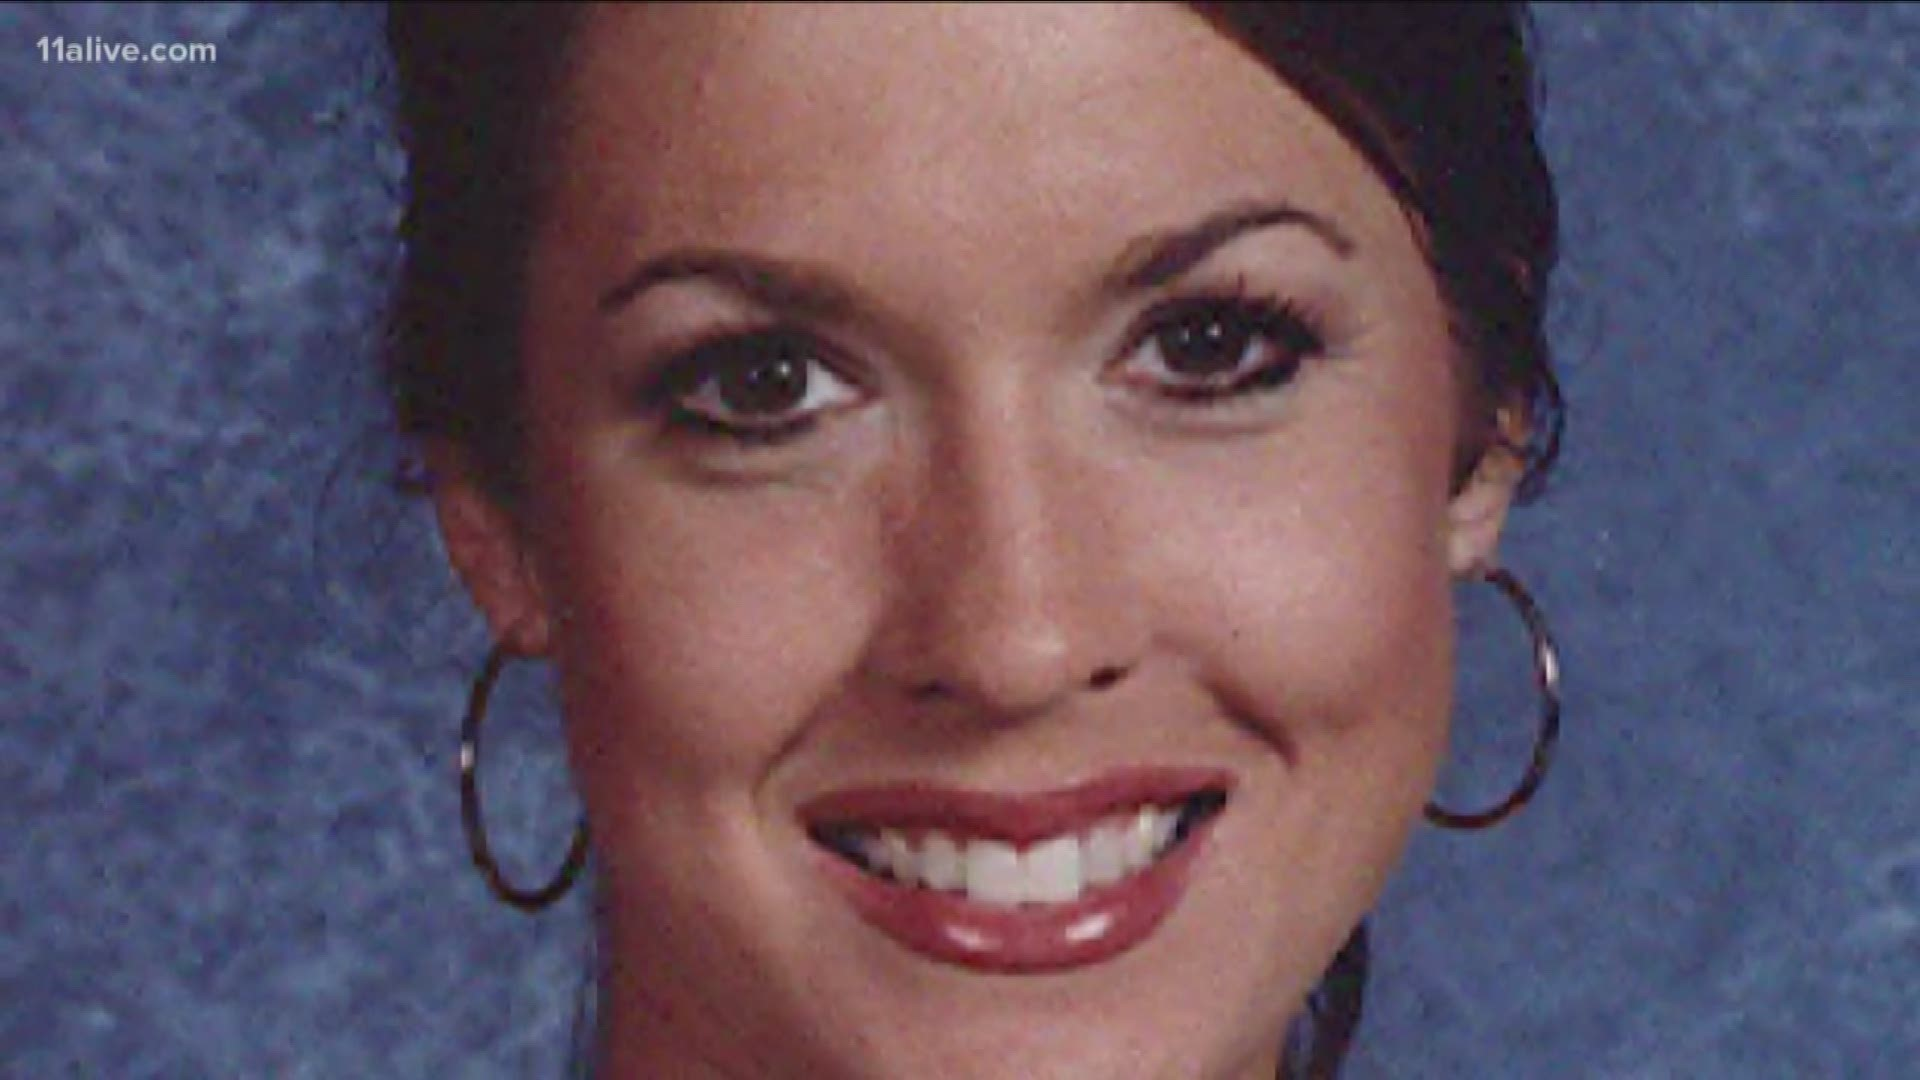 Tara Grinstead Trial The Beauty Queen Murder 11alive Com